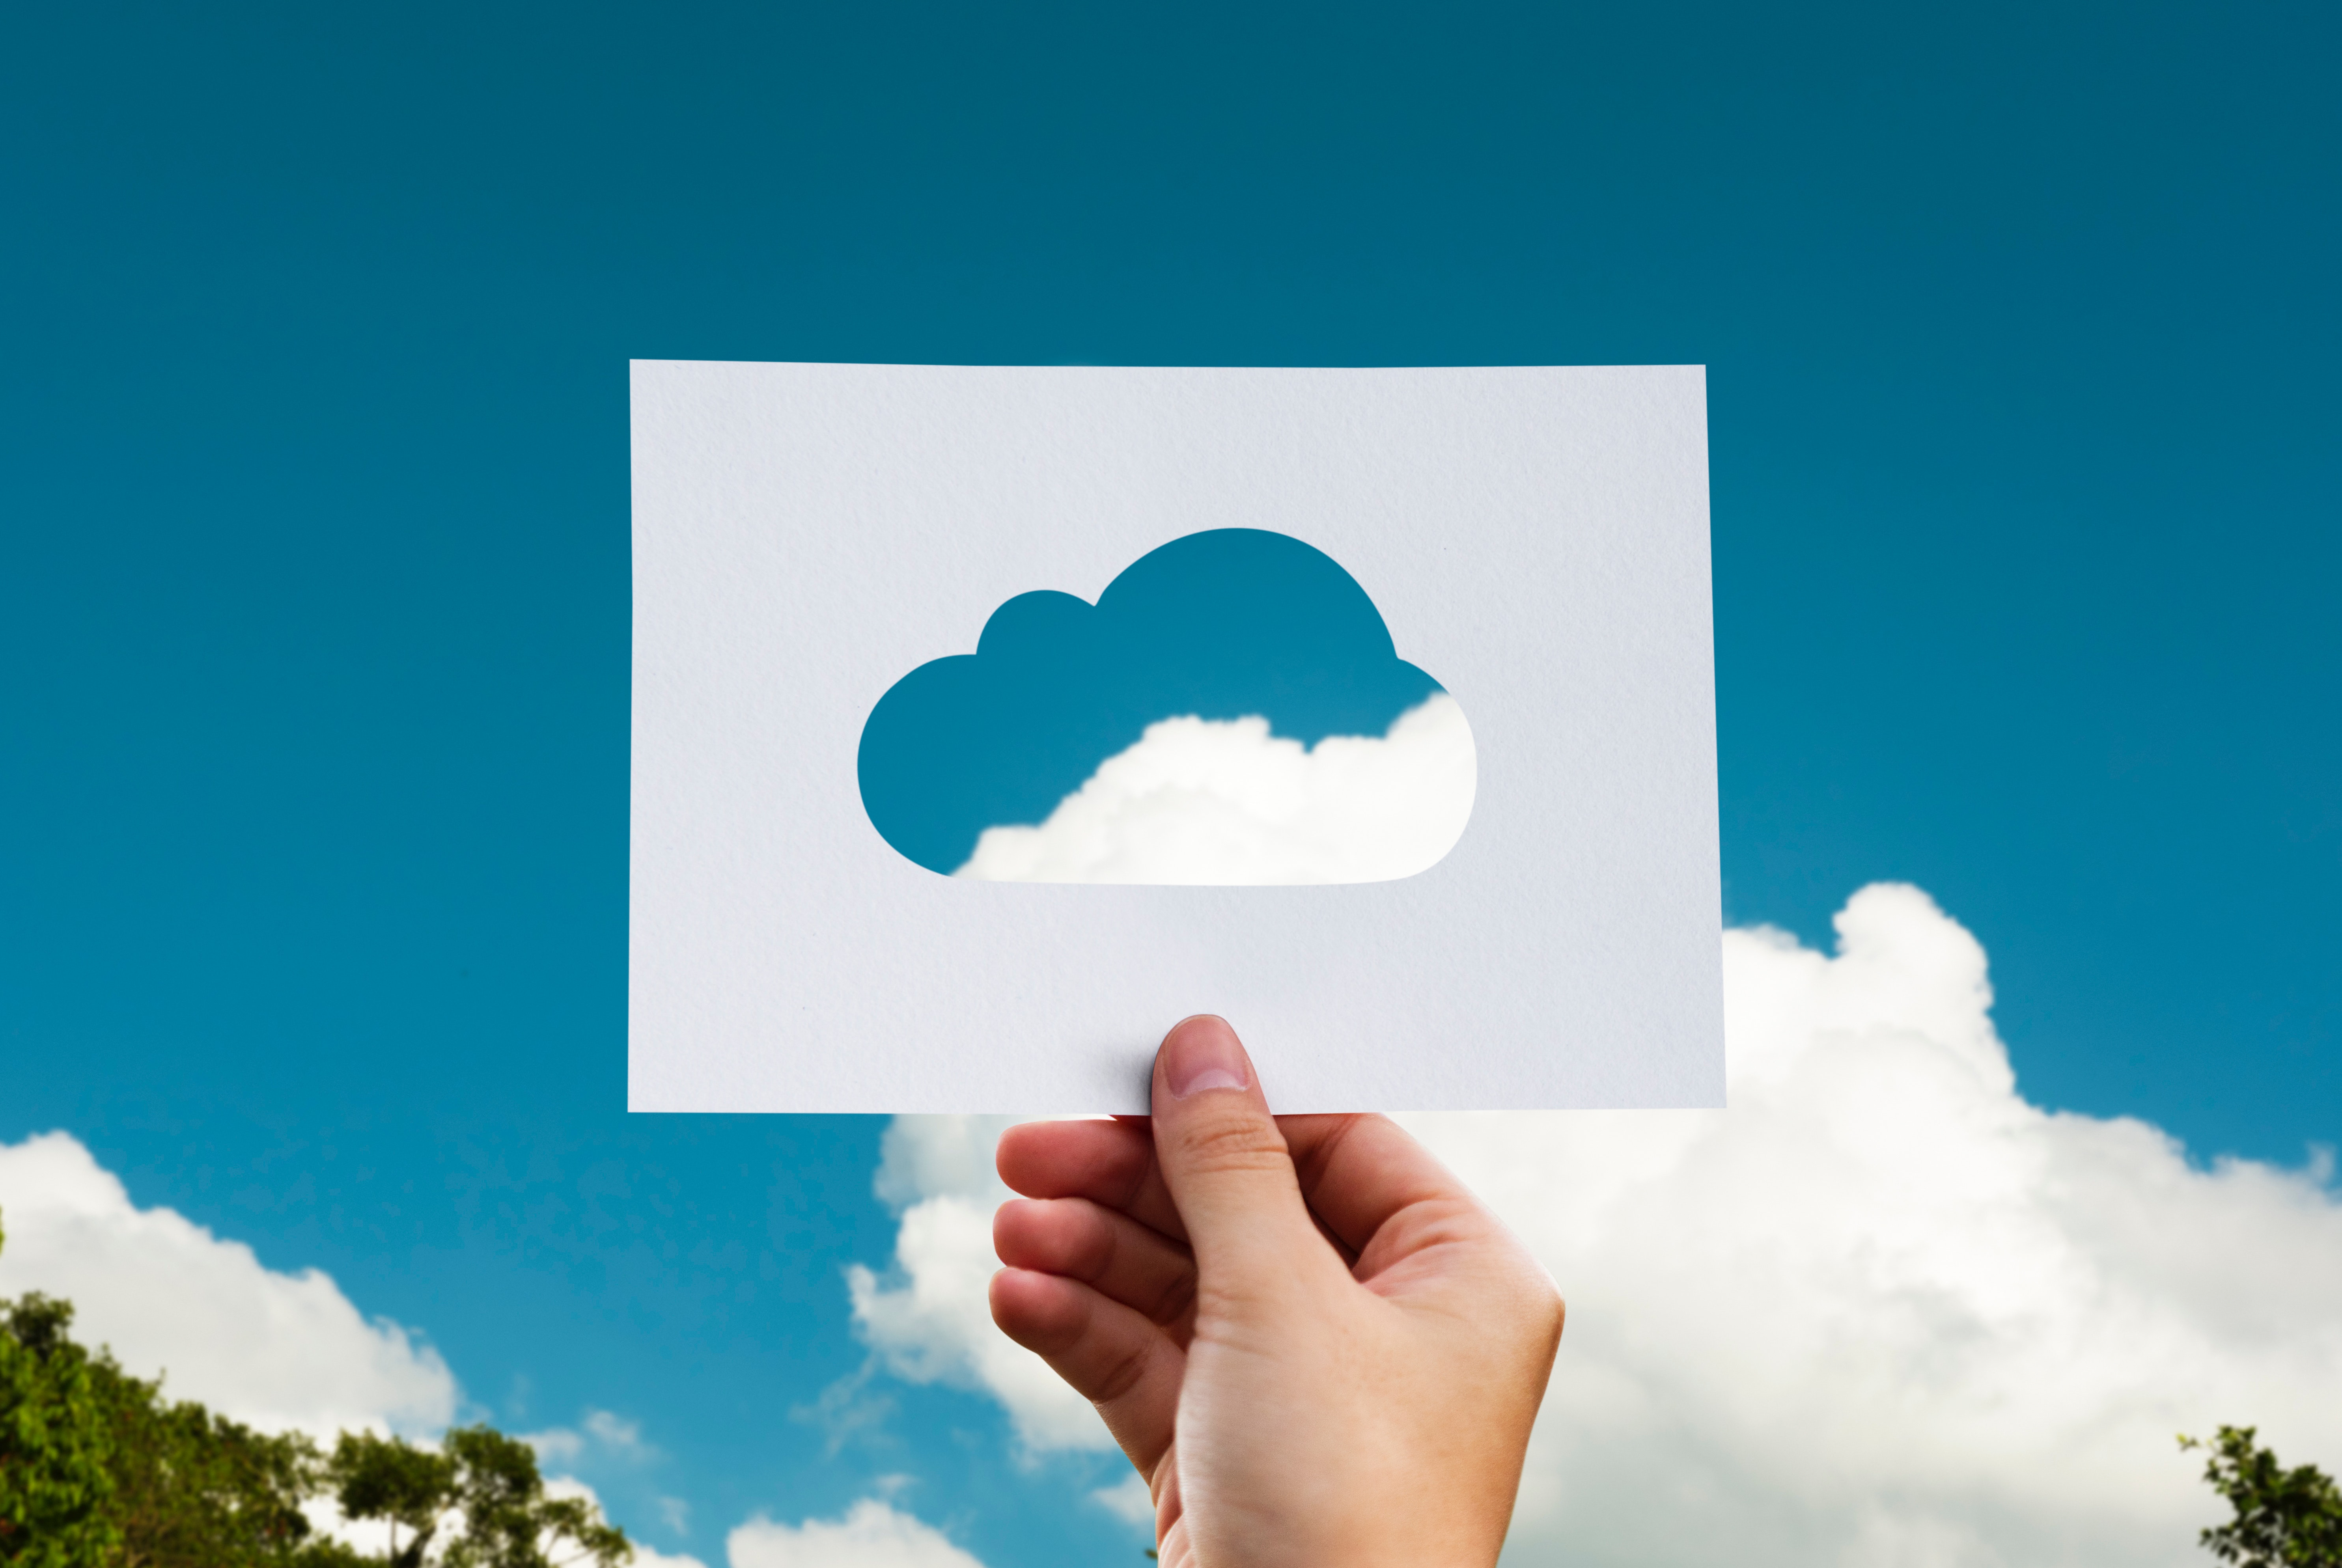 Grow your business with the cloud